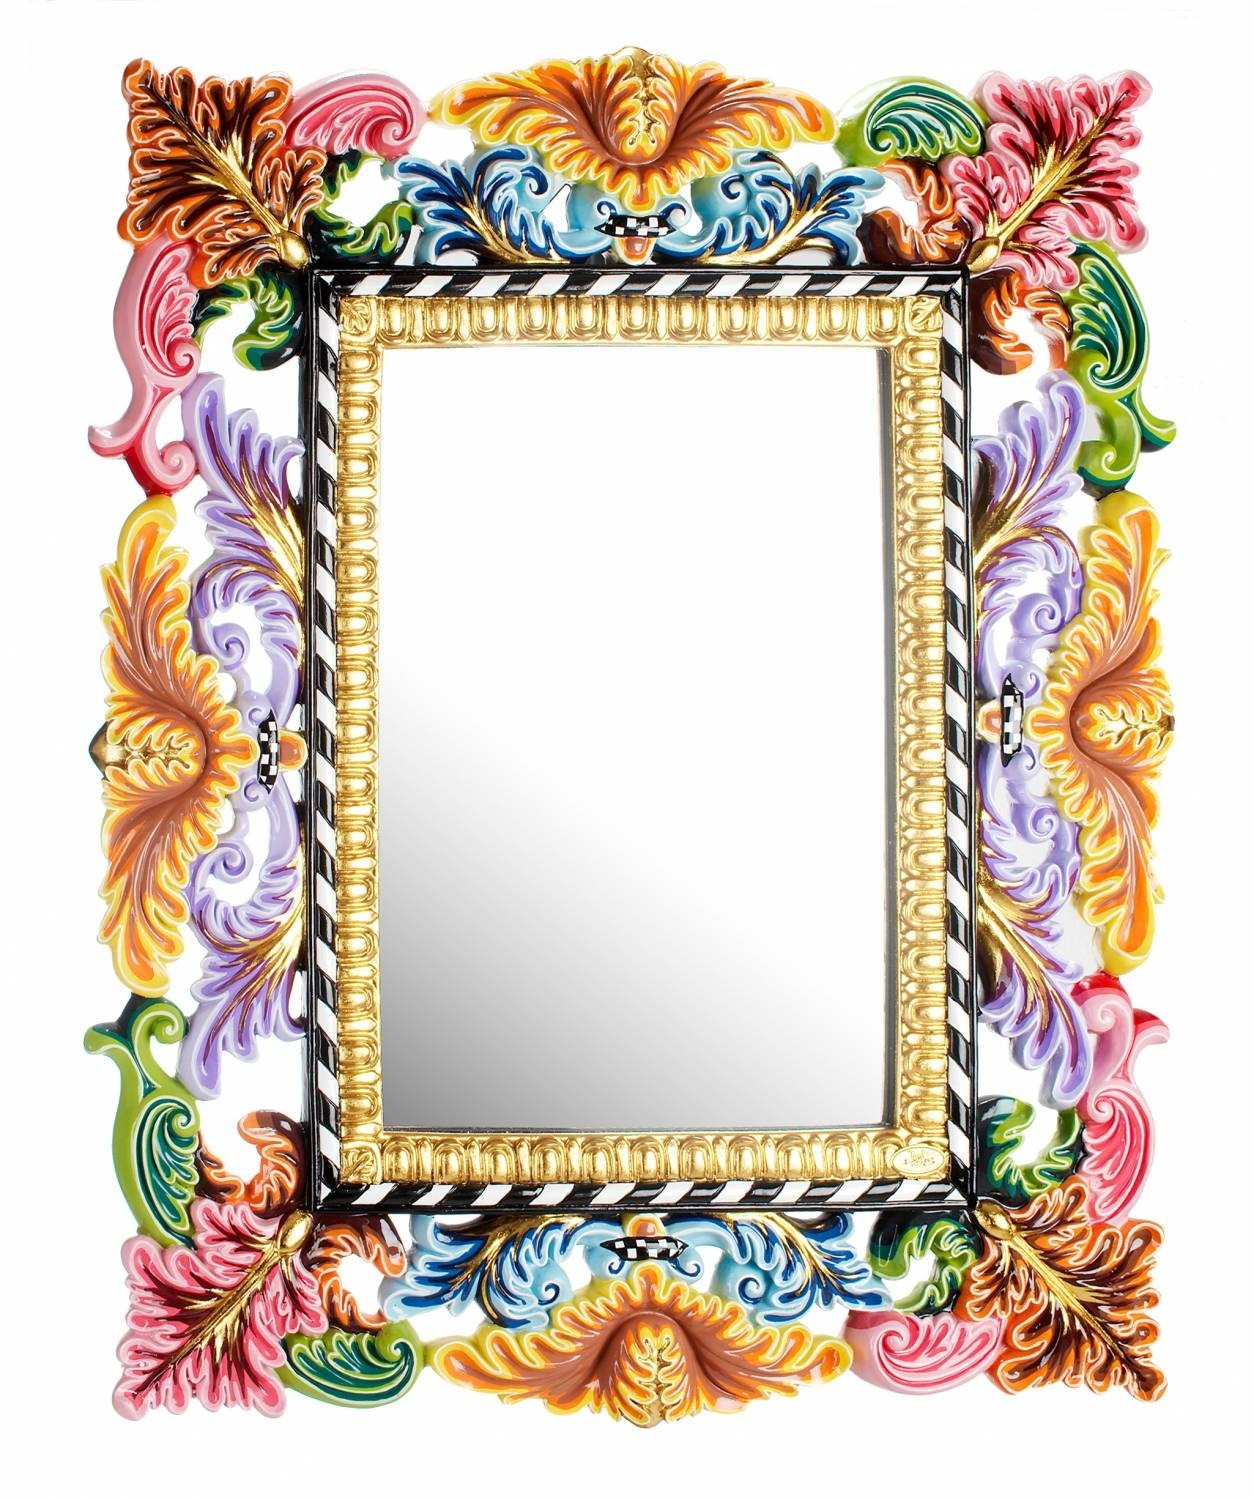 Toms Drag Baroque Mirror 3714 Online Shop Regarding Baroque Mirror Frame (Image 13 of 15)